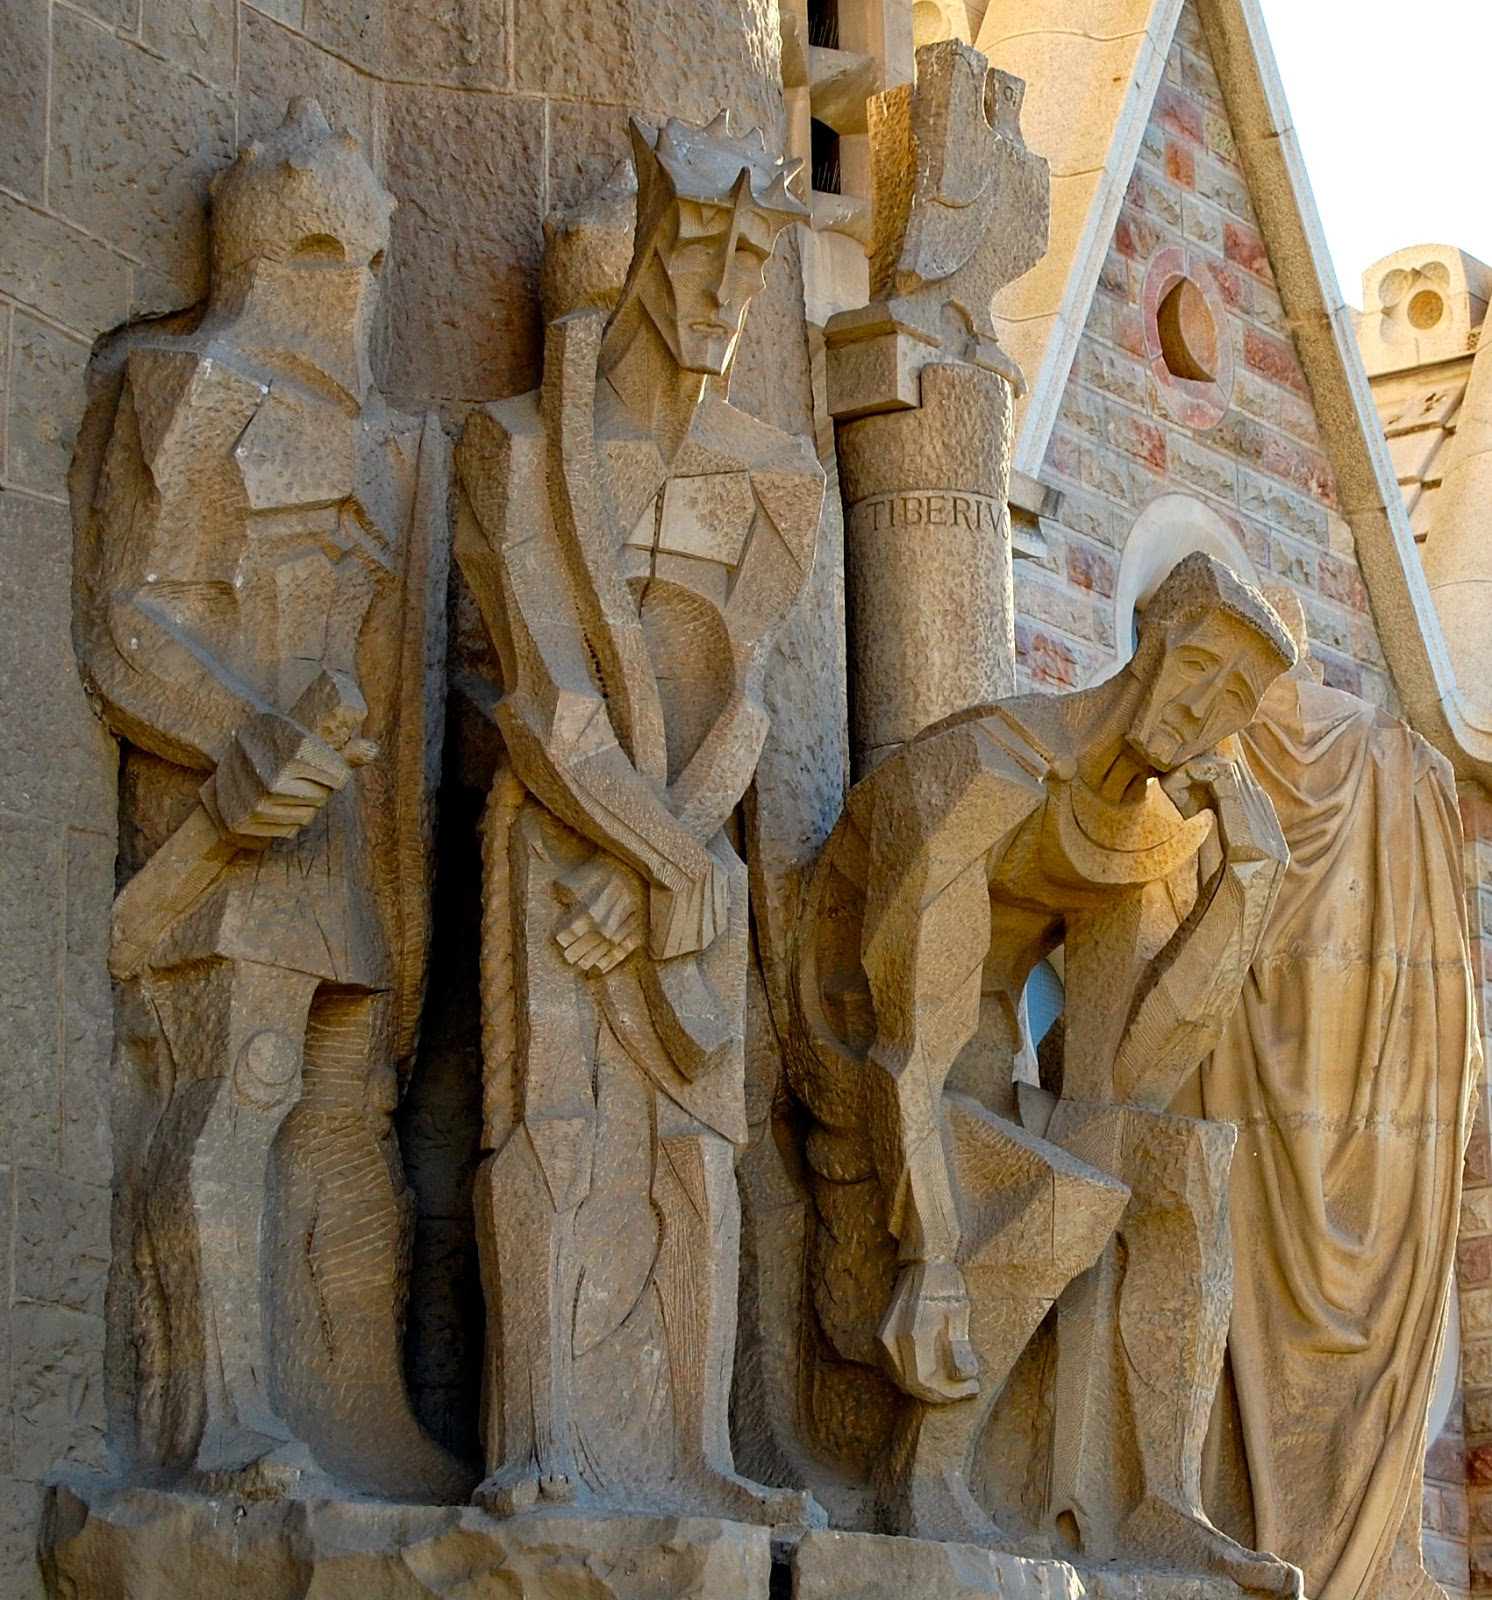 Jesus with a crown of thorns, Passion Facade, Sagrada Familia